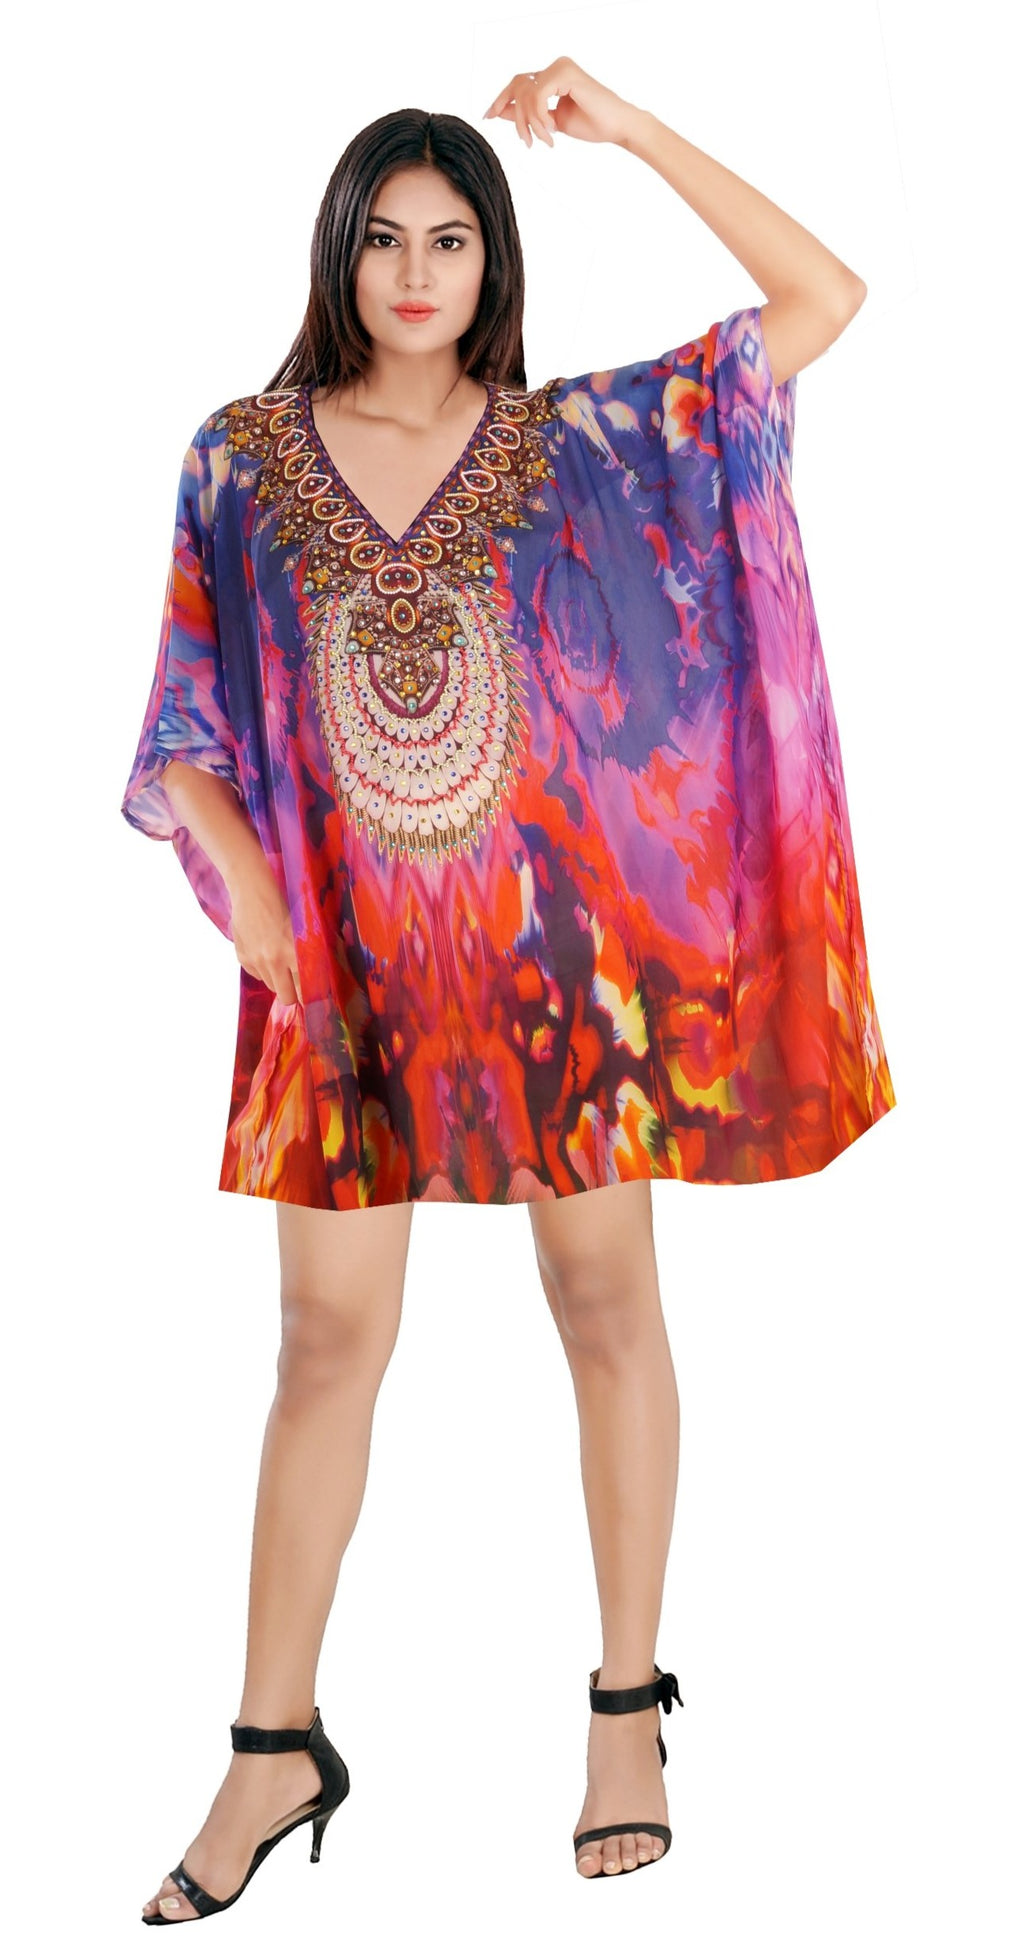 Multicolored Short unique style Silk Kaftan with Side cuts and Flamboyant Abstract Print embellishing over all Silk caftan tunic - Silk kaftan